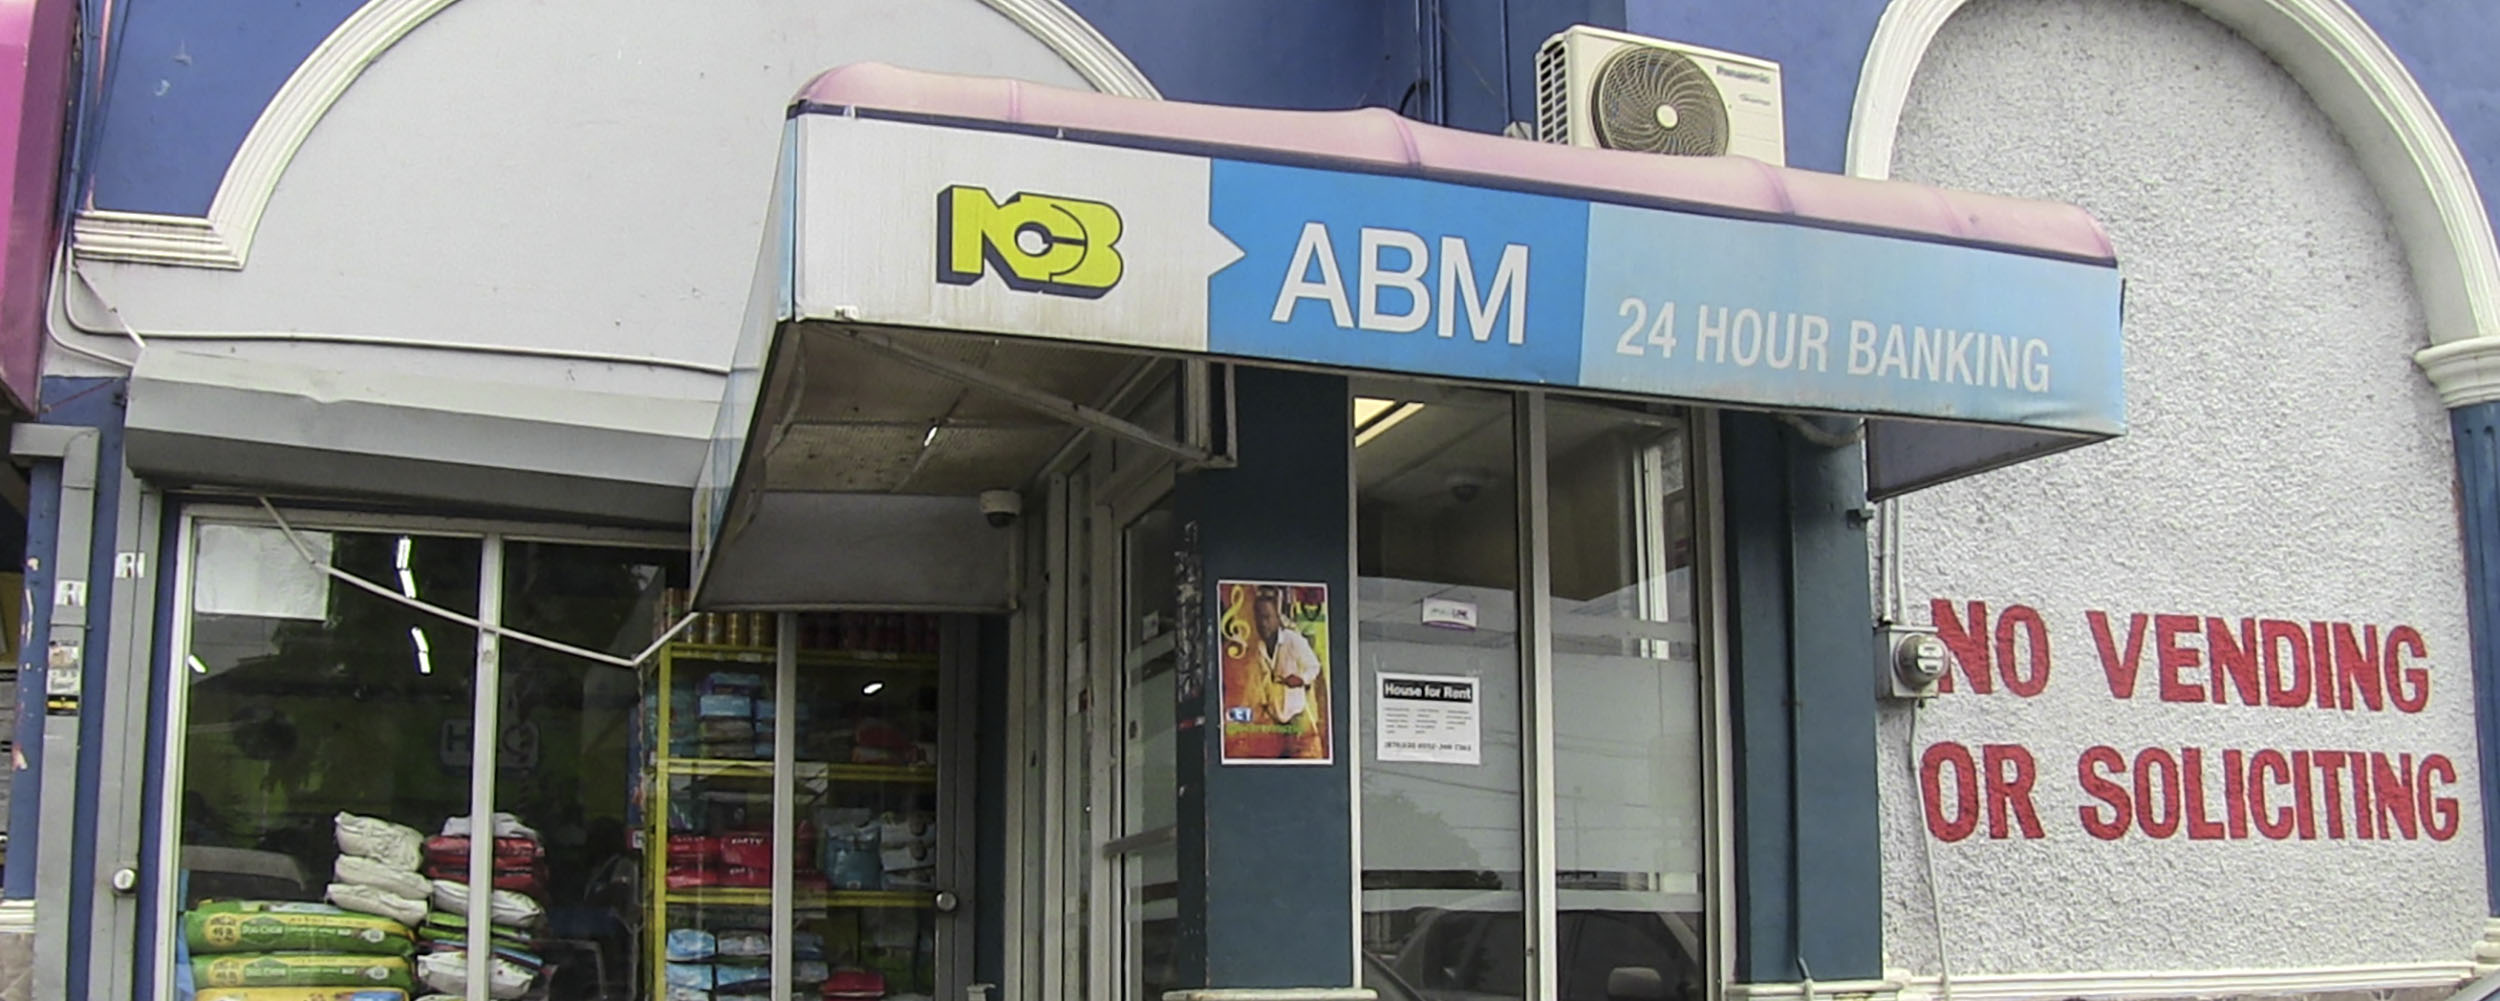 NCB National Commercal Bank ABM - Value Master Plaza - Negril Center - Negril Jamaica